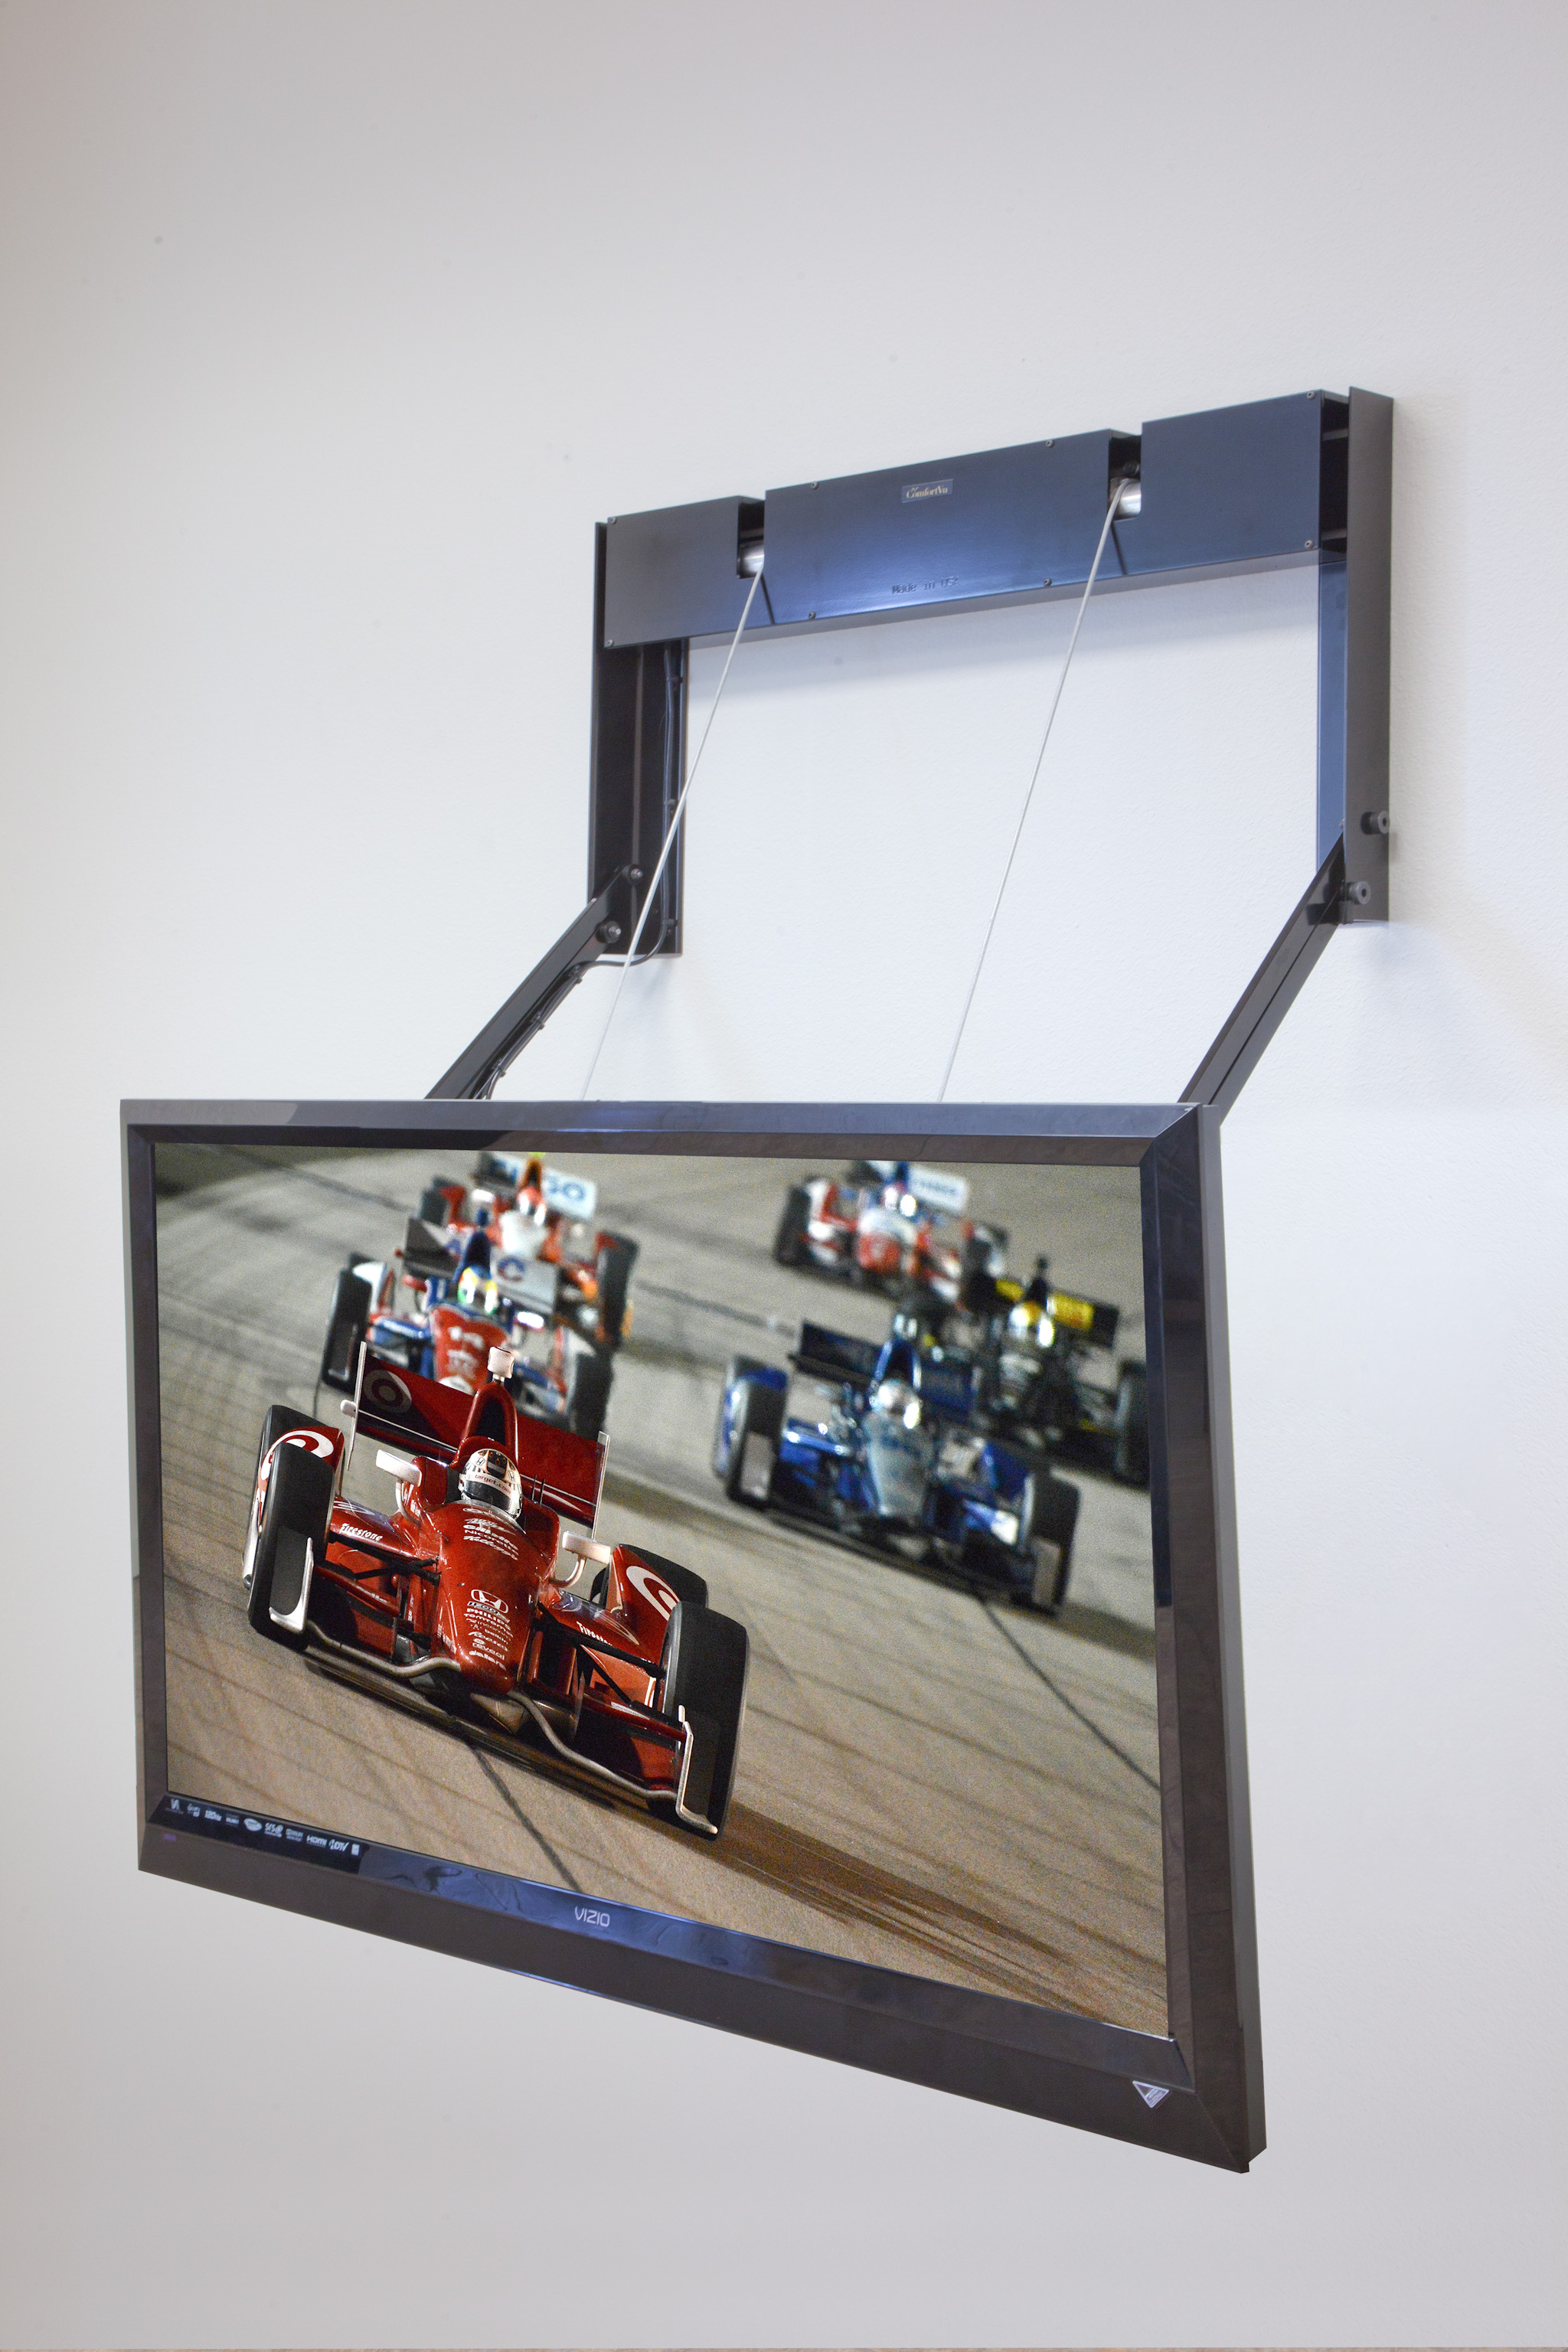 New Flatscreen Mount Provides Perfect Viewing Experience